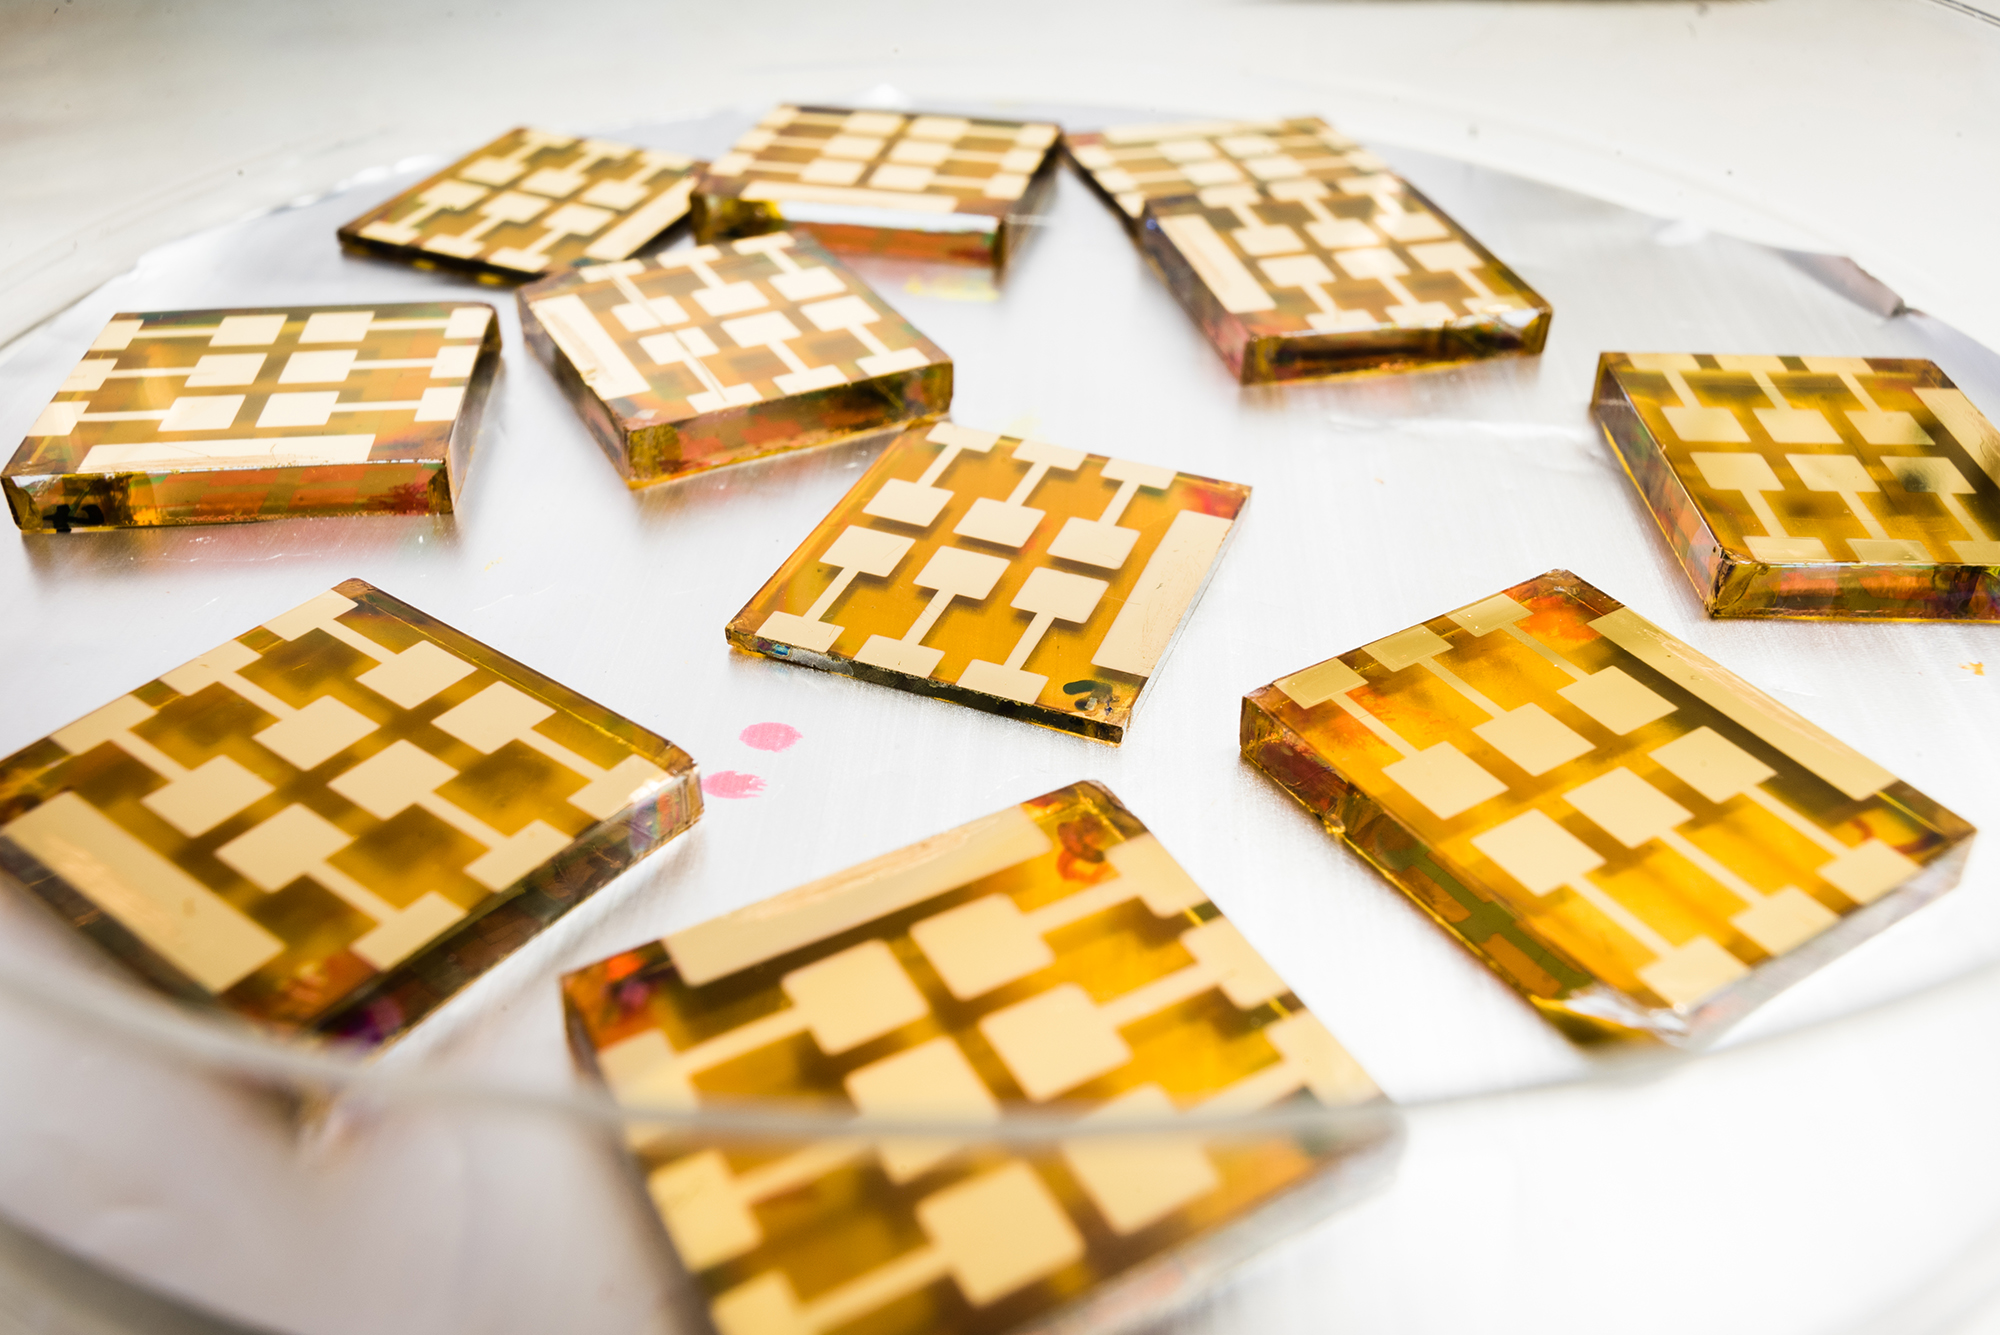 Solar cells in led-free double perovskites